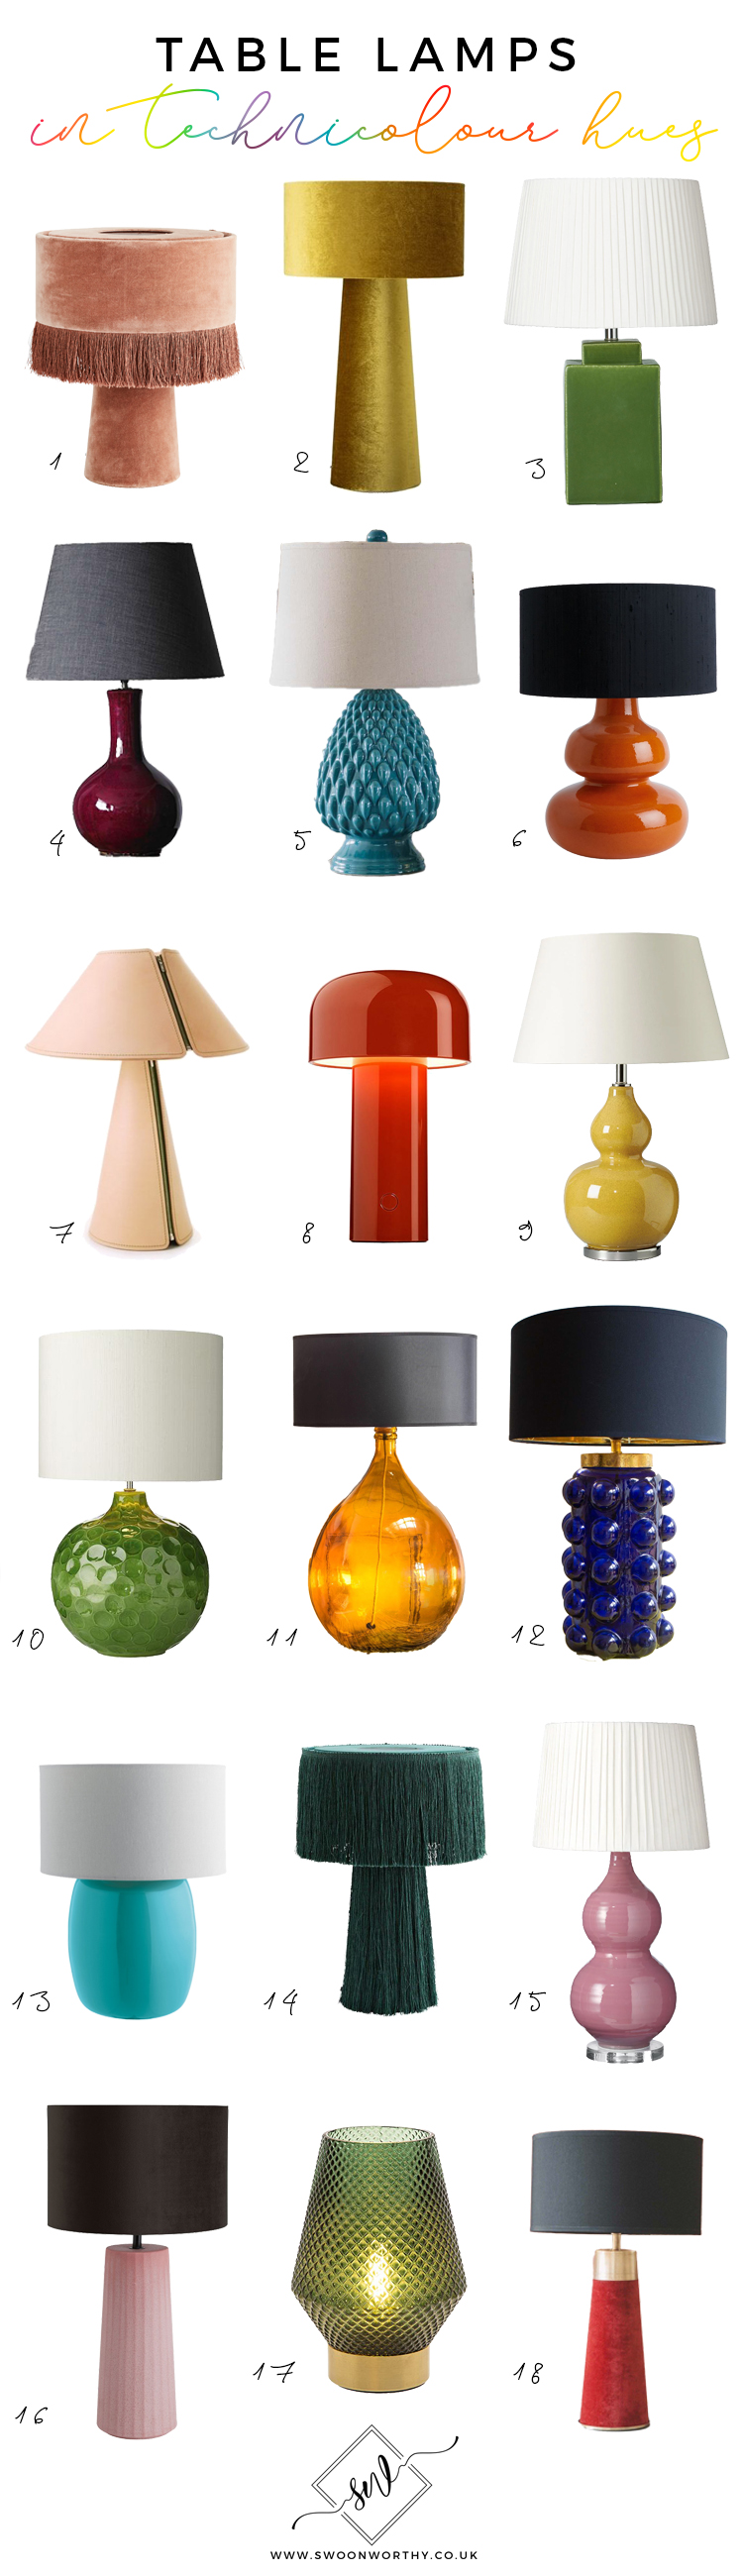 Colourful Table Lamp Roundup